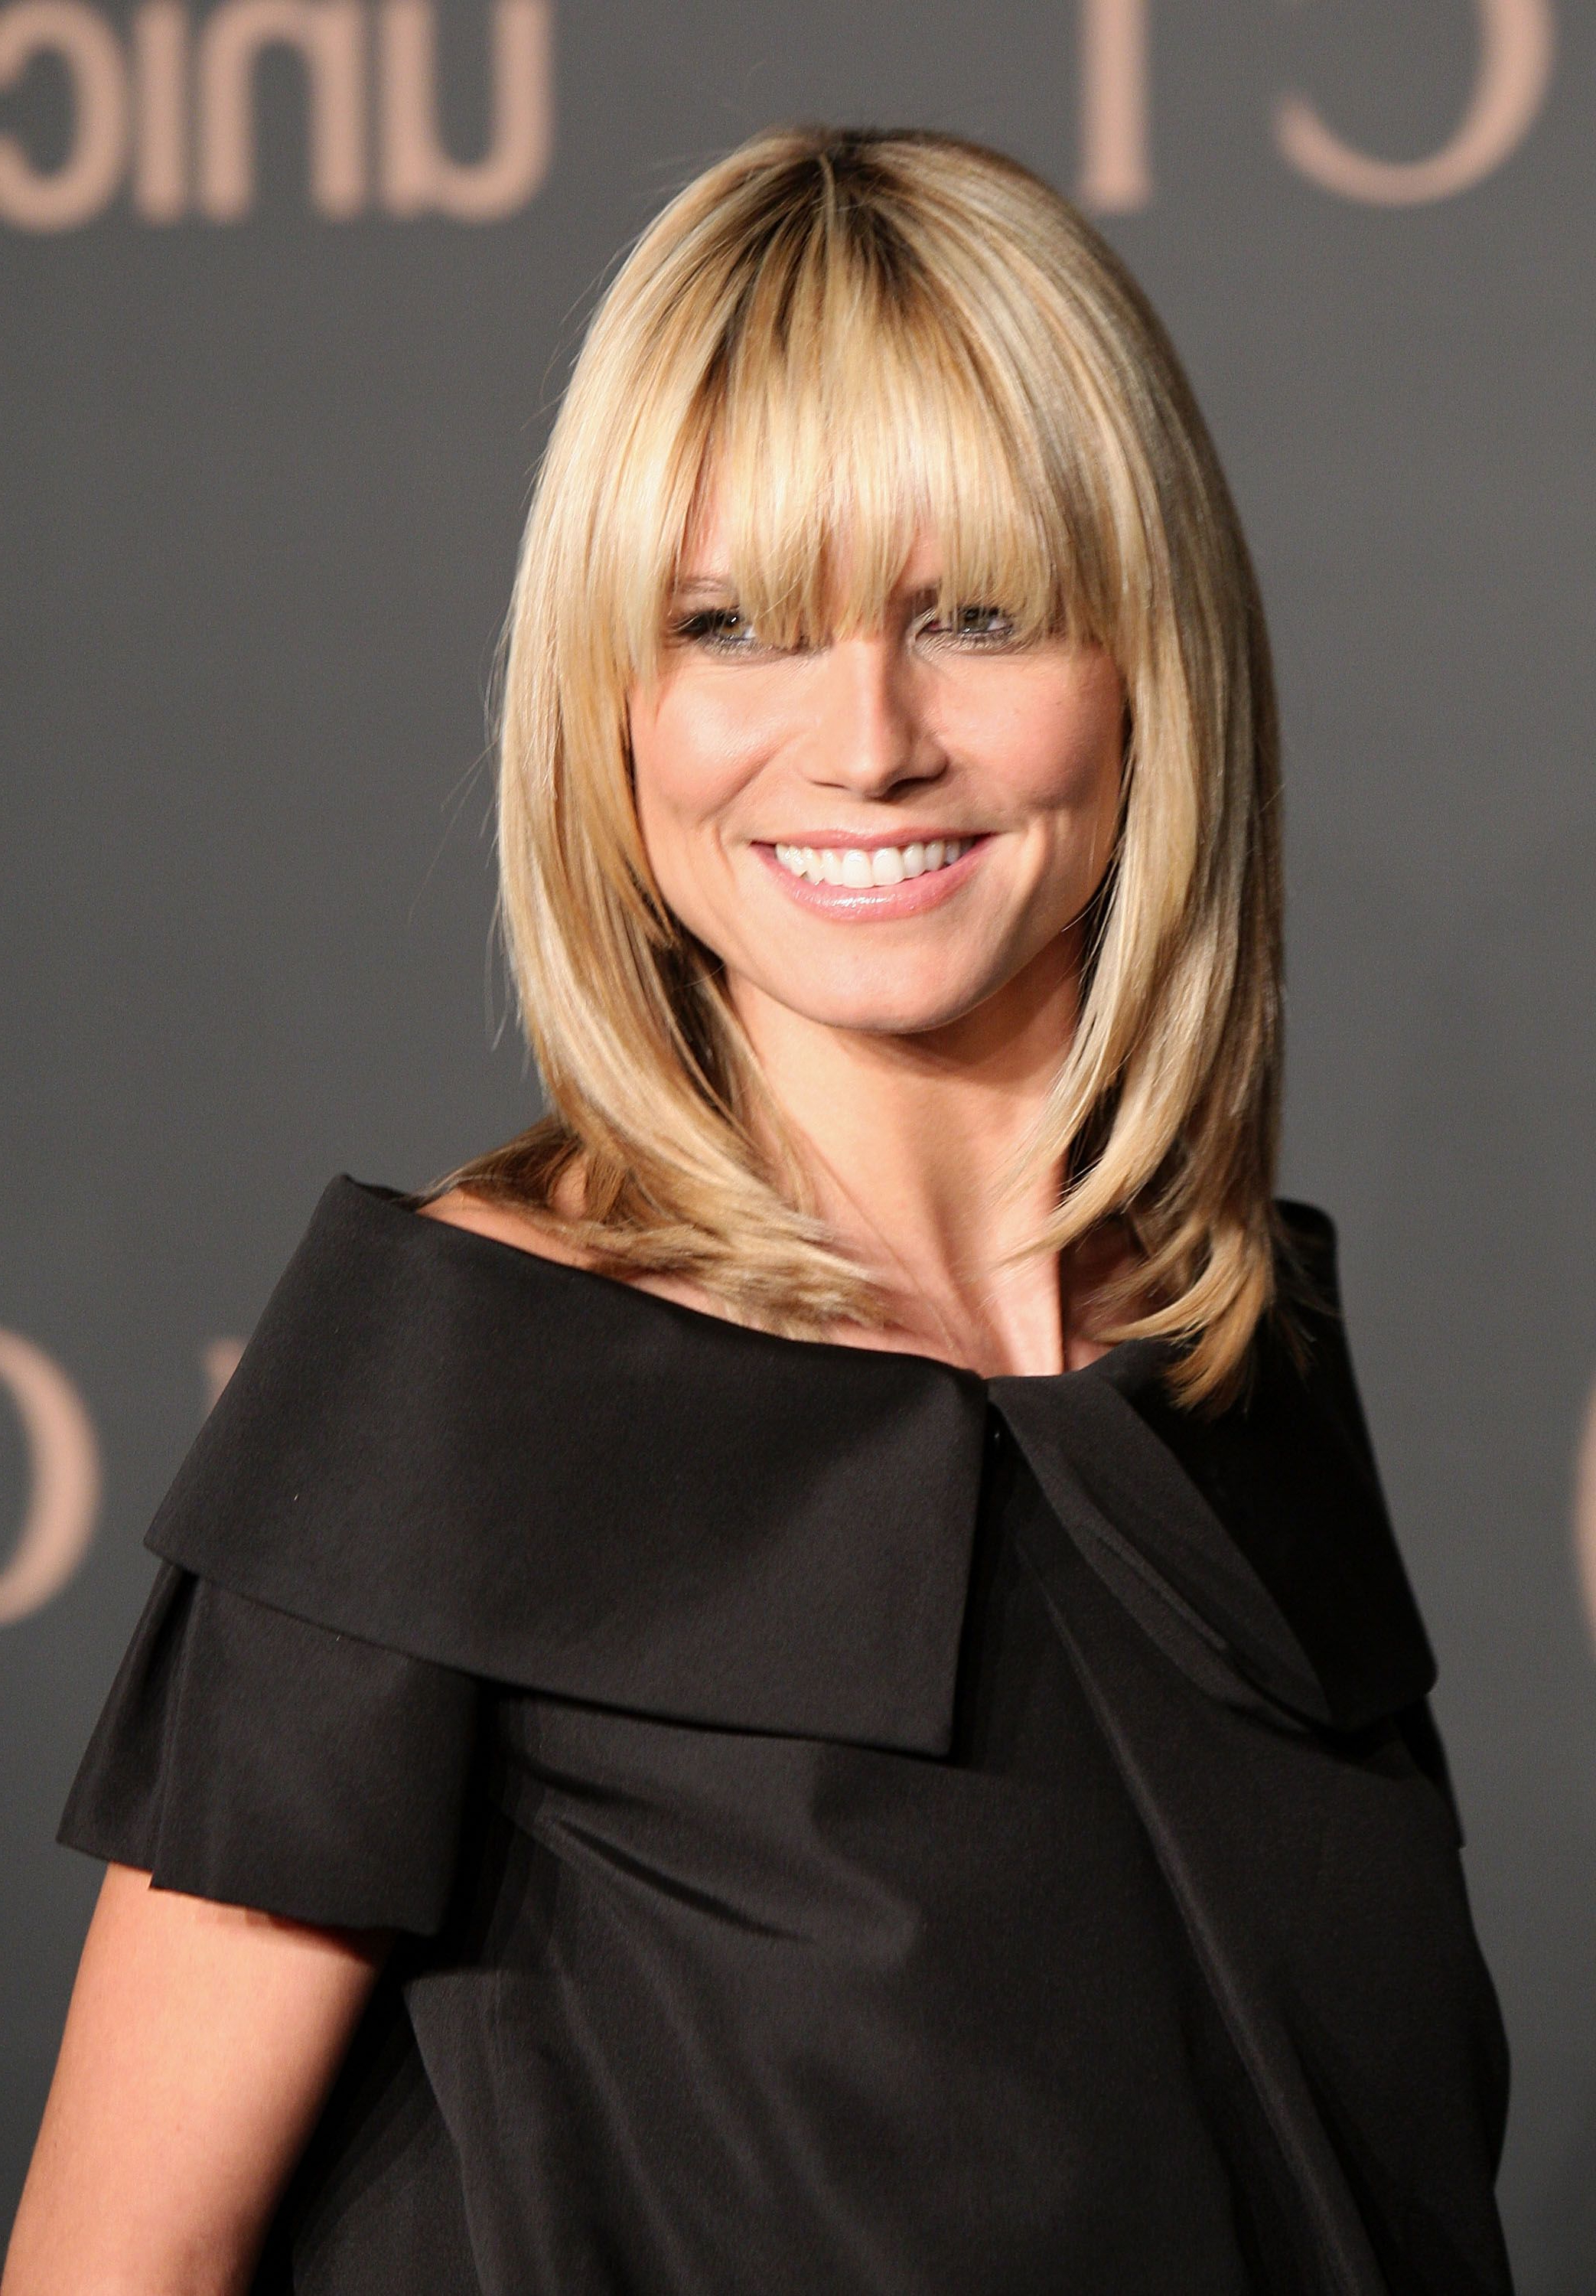 35 Best Hairstyles With Bangs – Photos Of Celebrity Haircuts With Bangs Pertaining To Most Up To Date Medium Haircuts With Fringes (View 1 of 20)